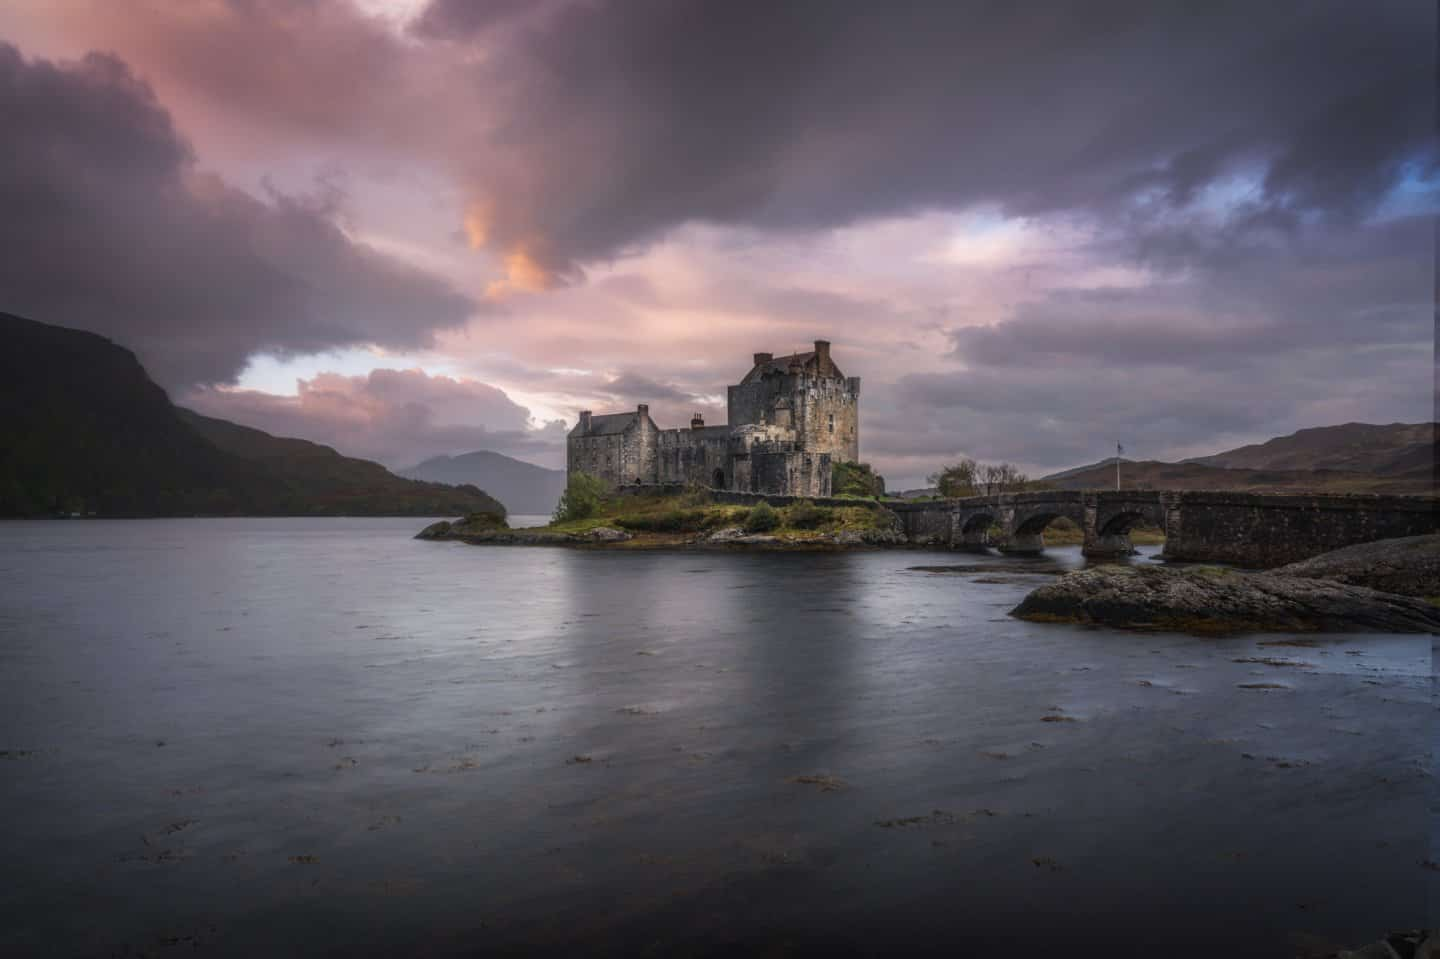 My favorite castle on this Isle of Skye 2 day tour from Edinburgh is Eilean Donan; magical at sunrise or sunset!